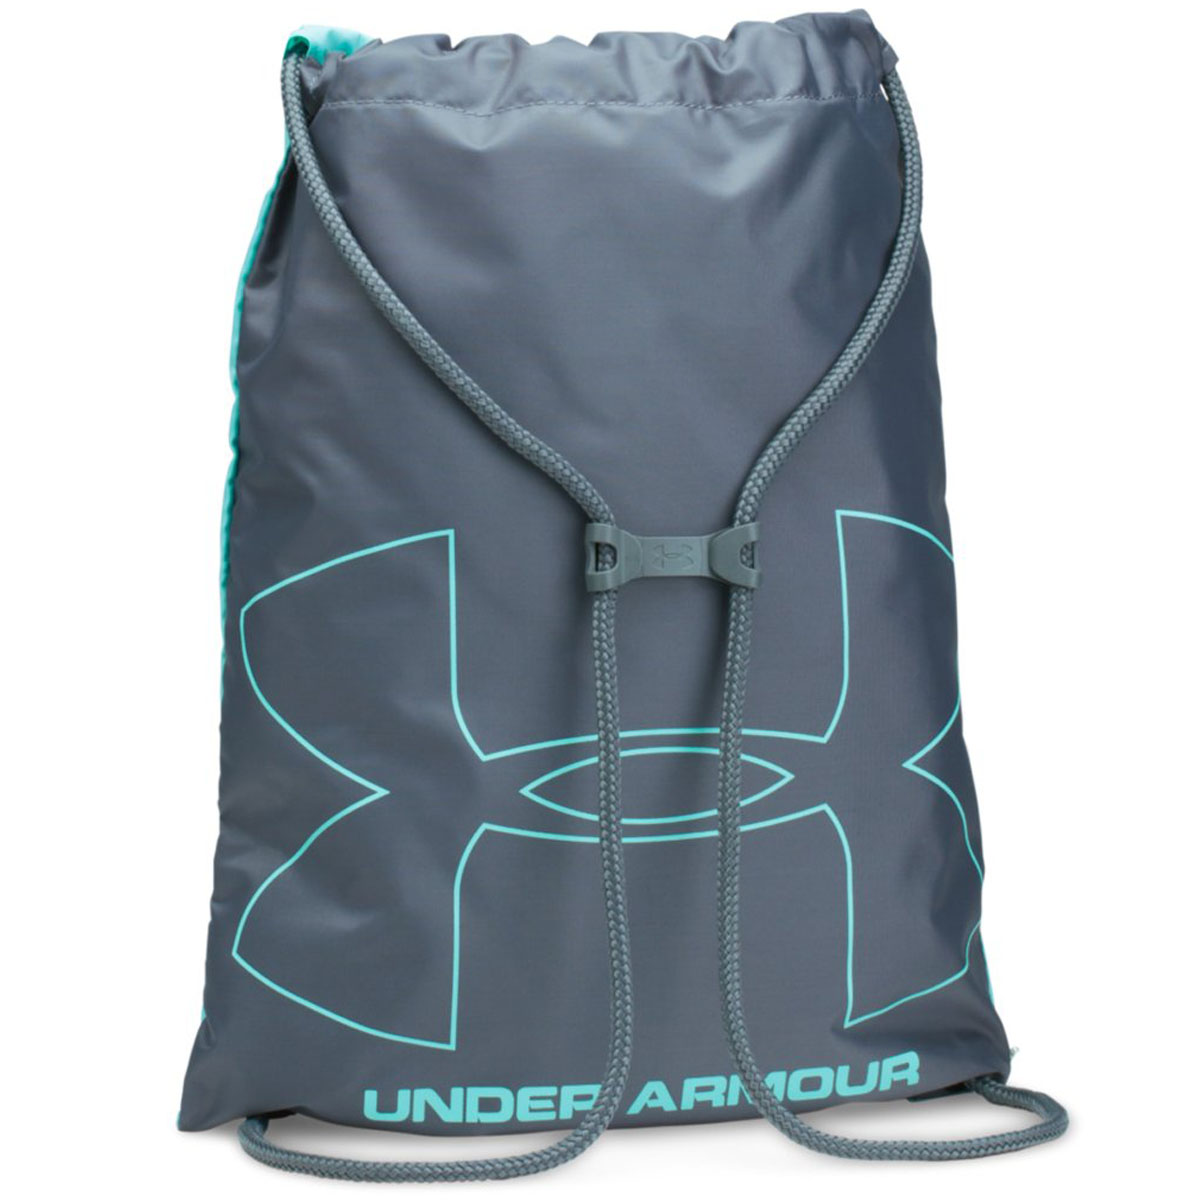 a76fd18a7aa1 Under Armour 2019 UA Ozsee Sackpack Drawstring Bag Gym School ...